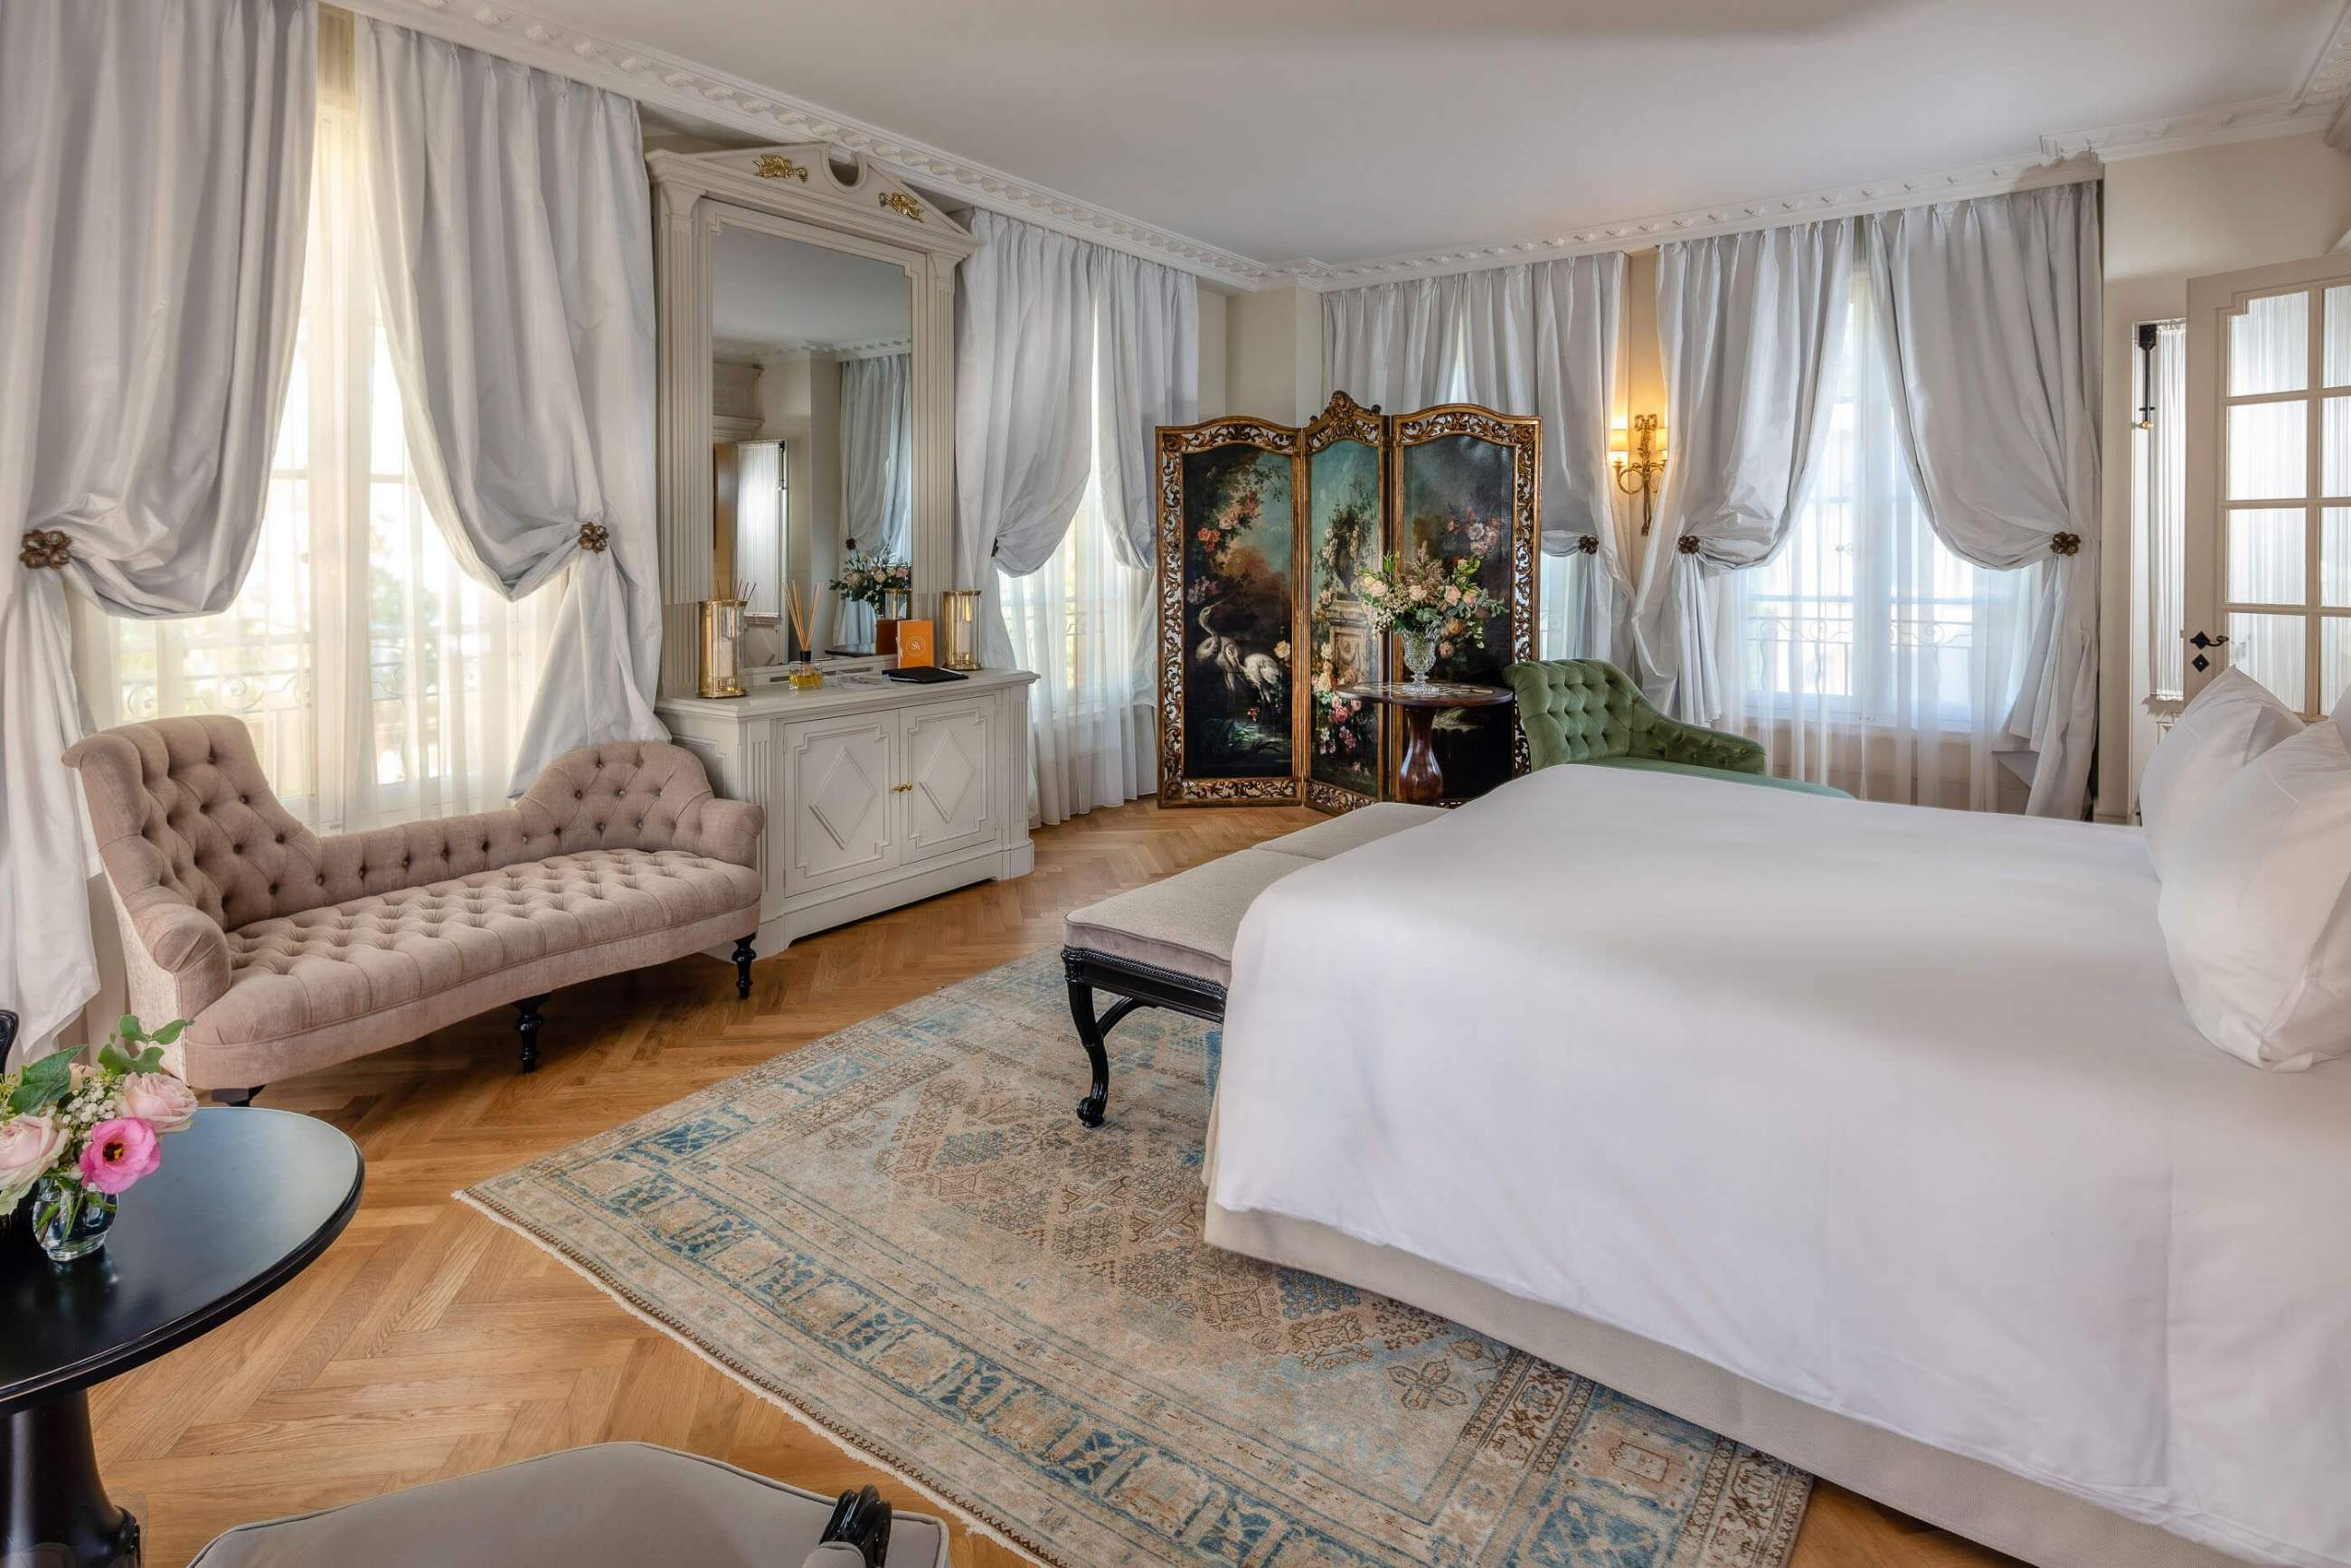 Room at Villa Saint Ange in the south of france